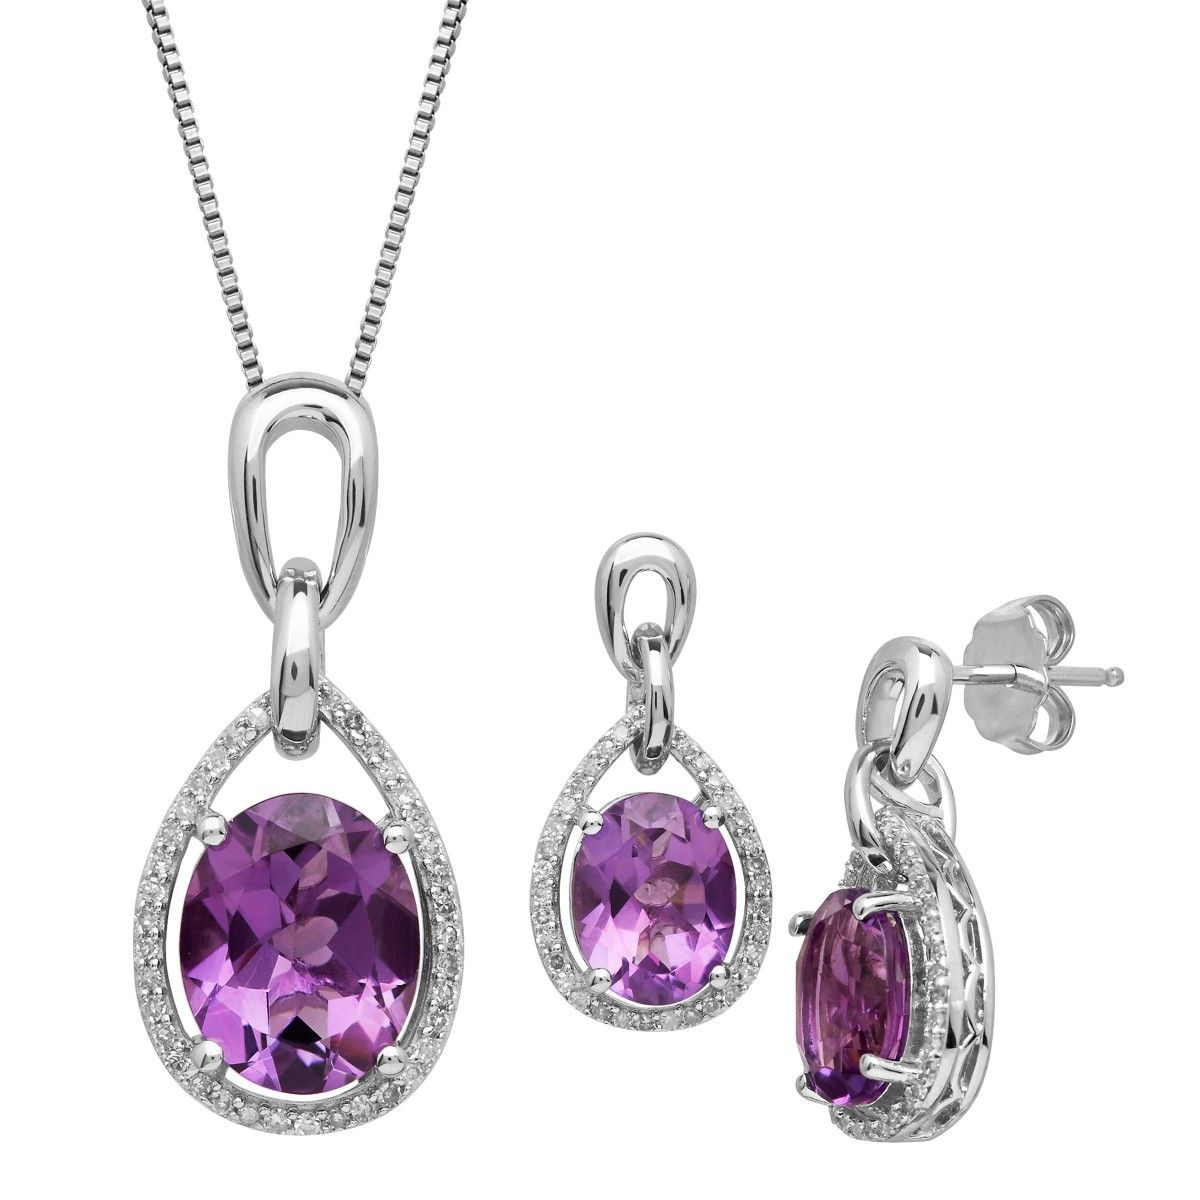 Valentine's Day Jewelry Sets for Moms, Sisters, and Daughters http://www.girlsguidetoglitz.com/blog/2017/2/5/valentines-day-jewelry-sets-for-moms-sisters-and-daughters